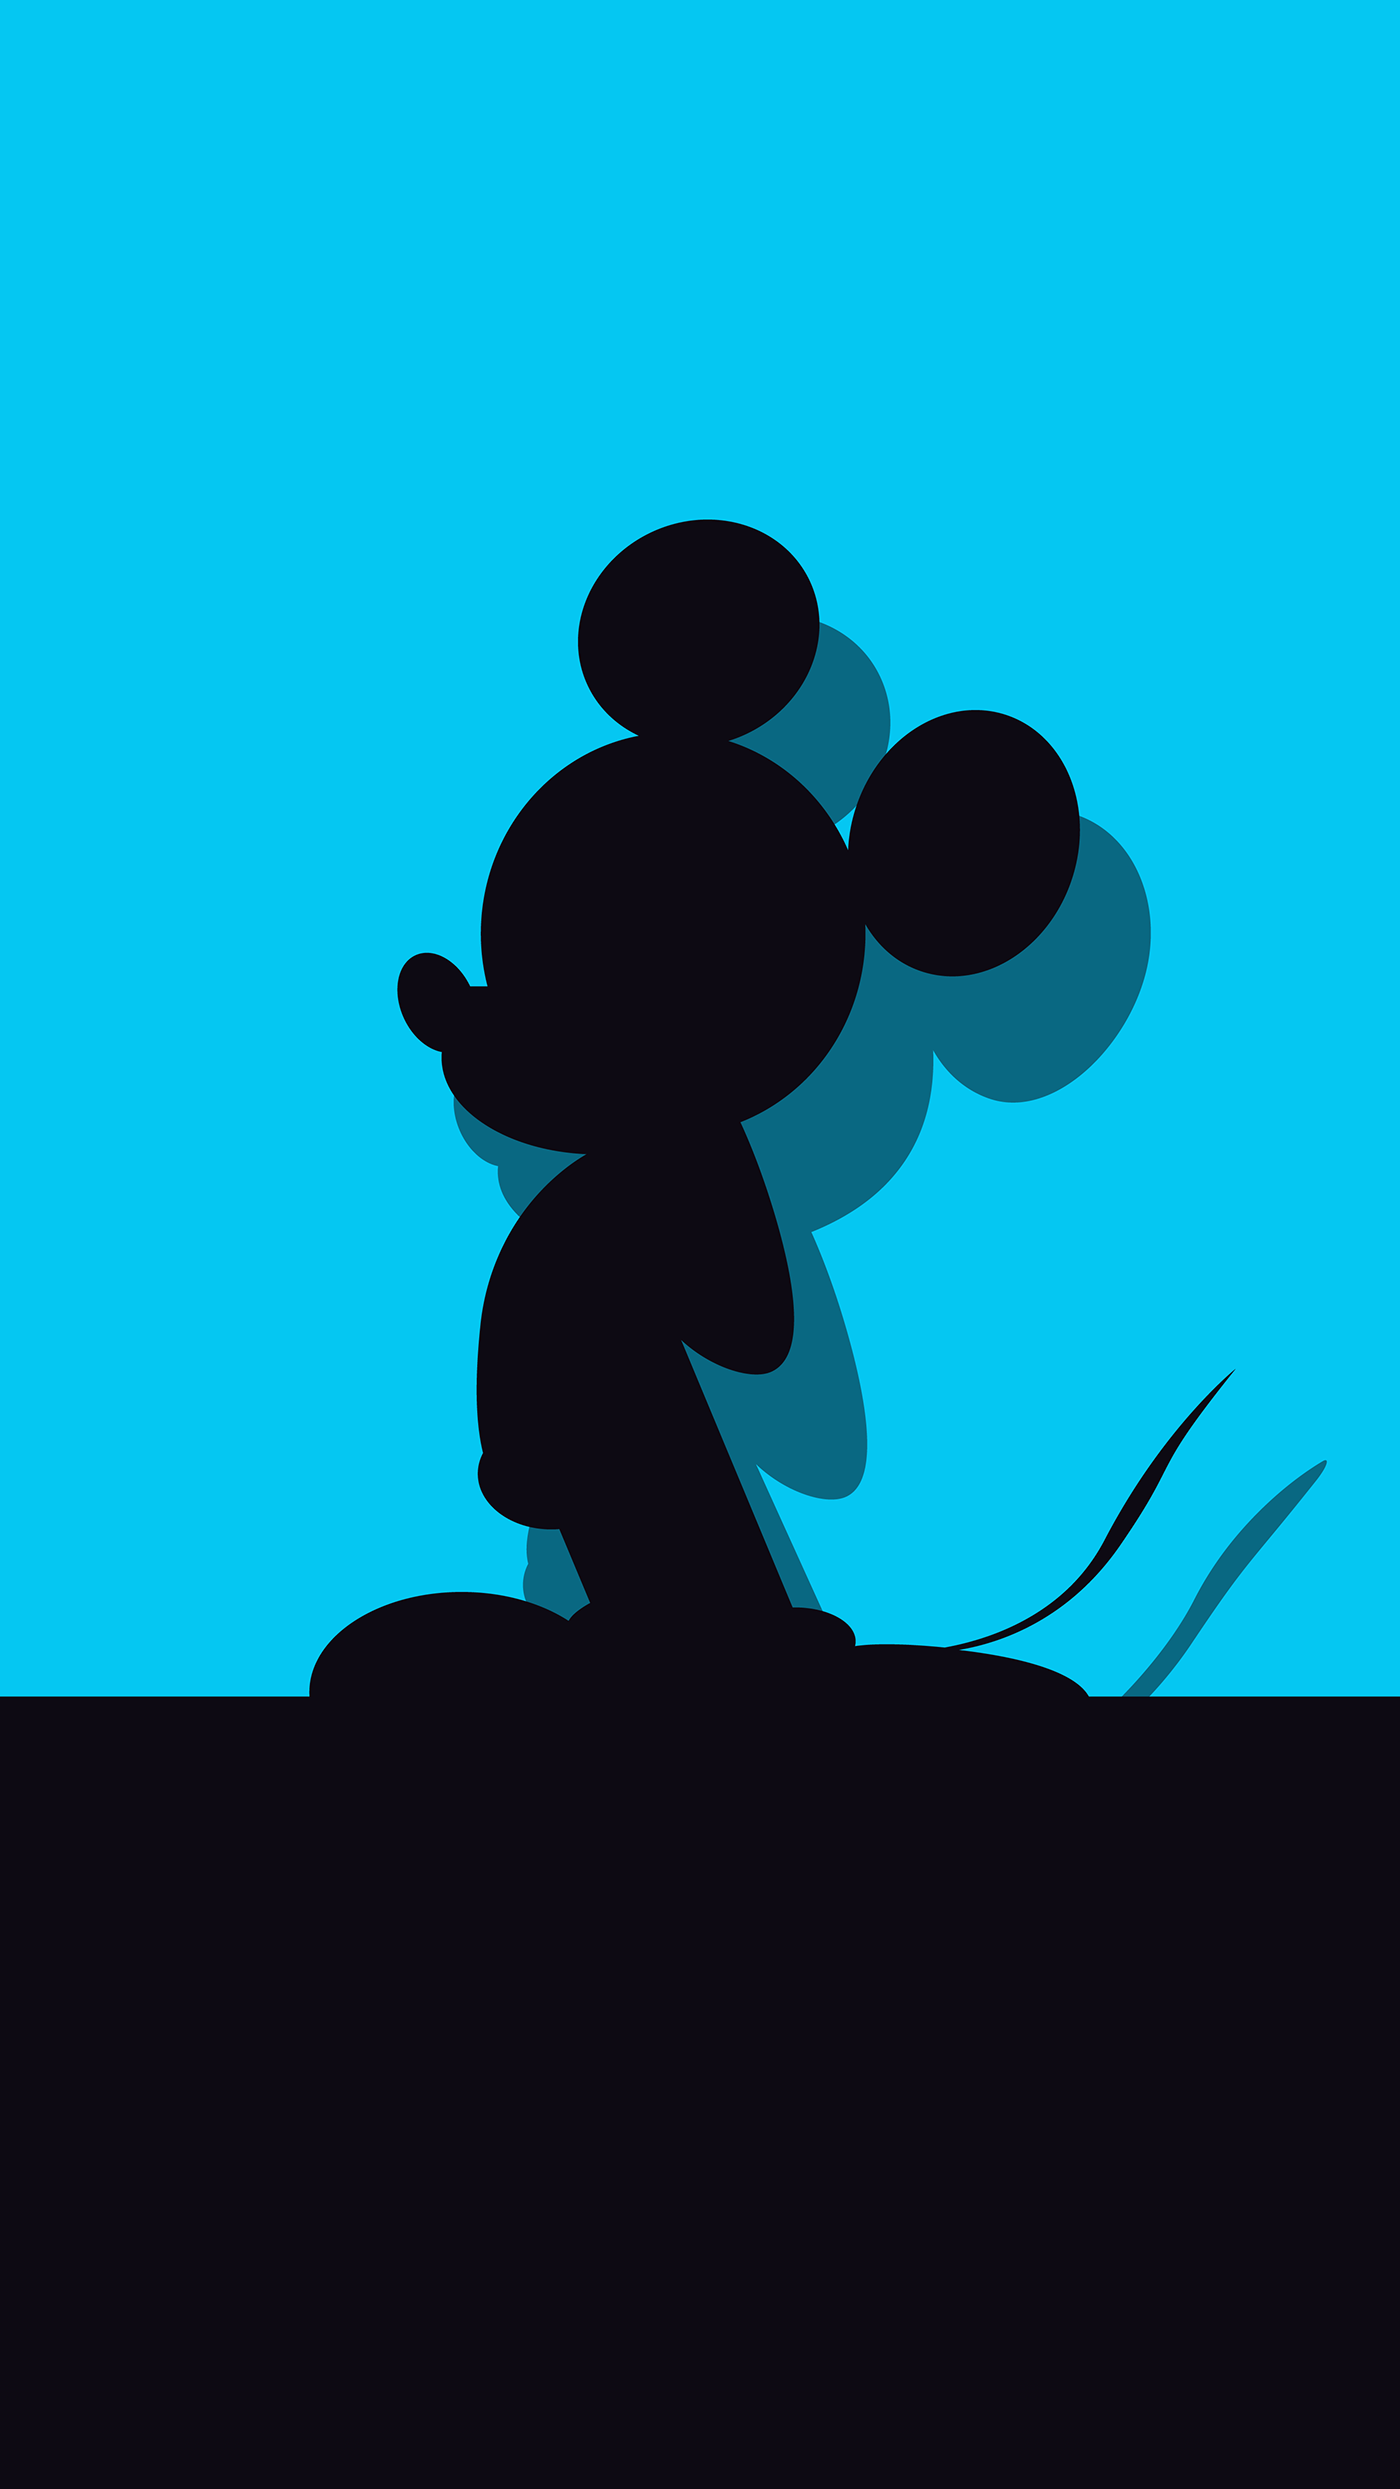 Obey Mickey Mouse Wallpapers Obey Mickey Mouse Hands Image Gallery